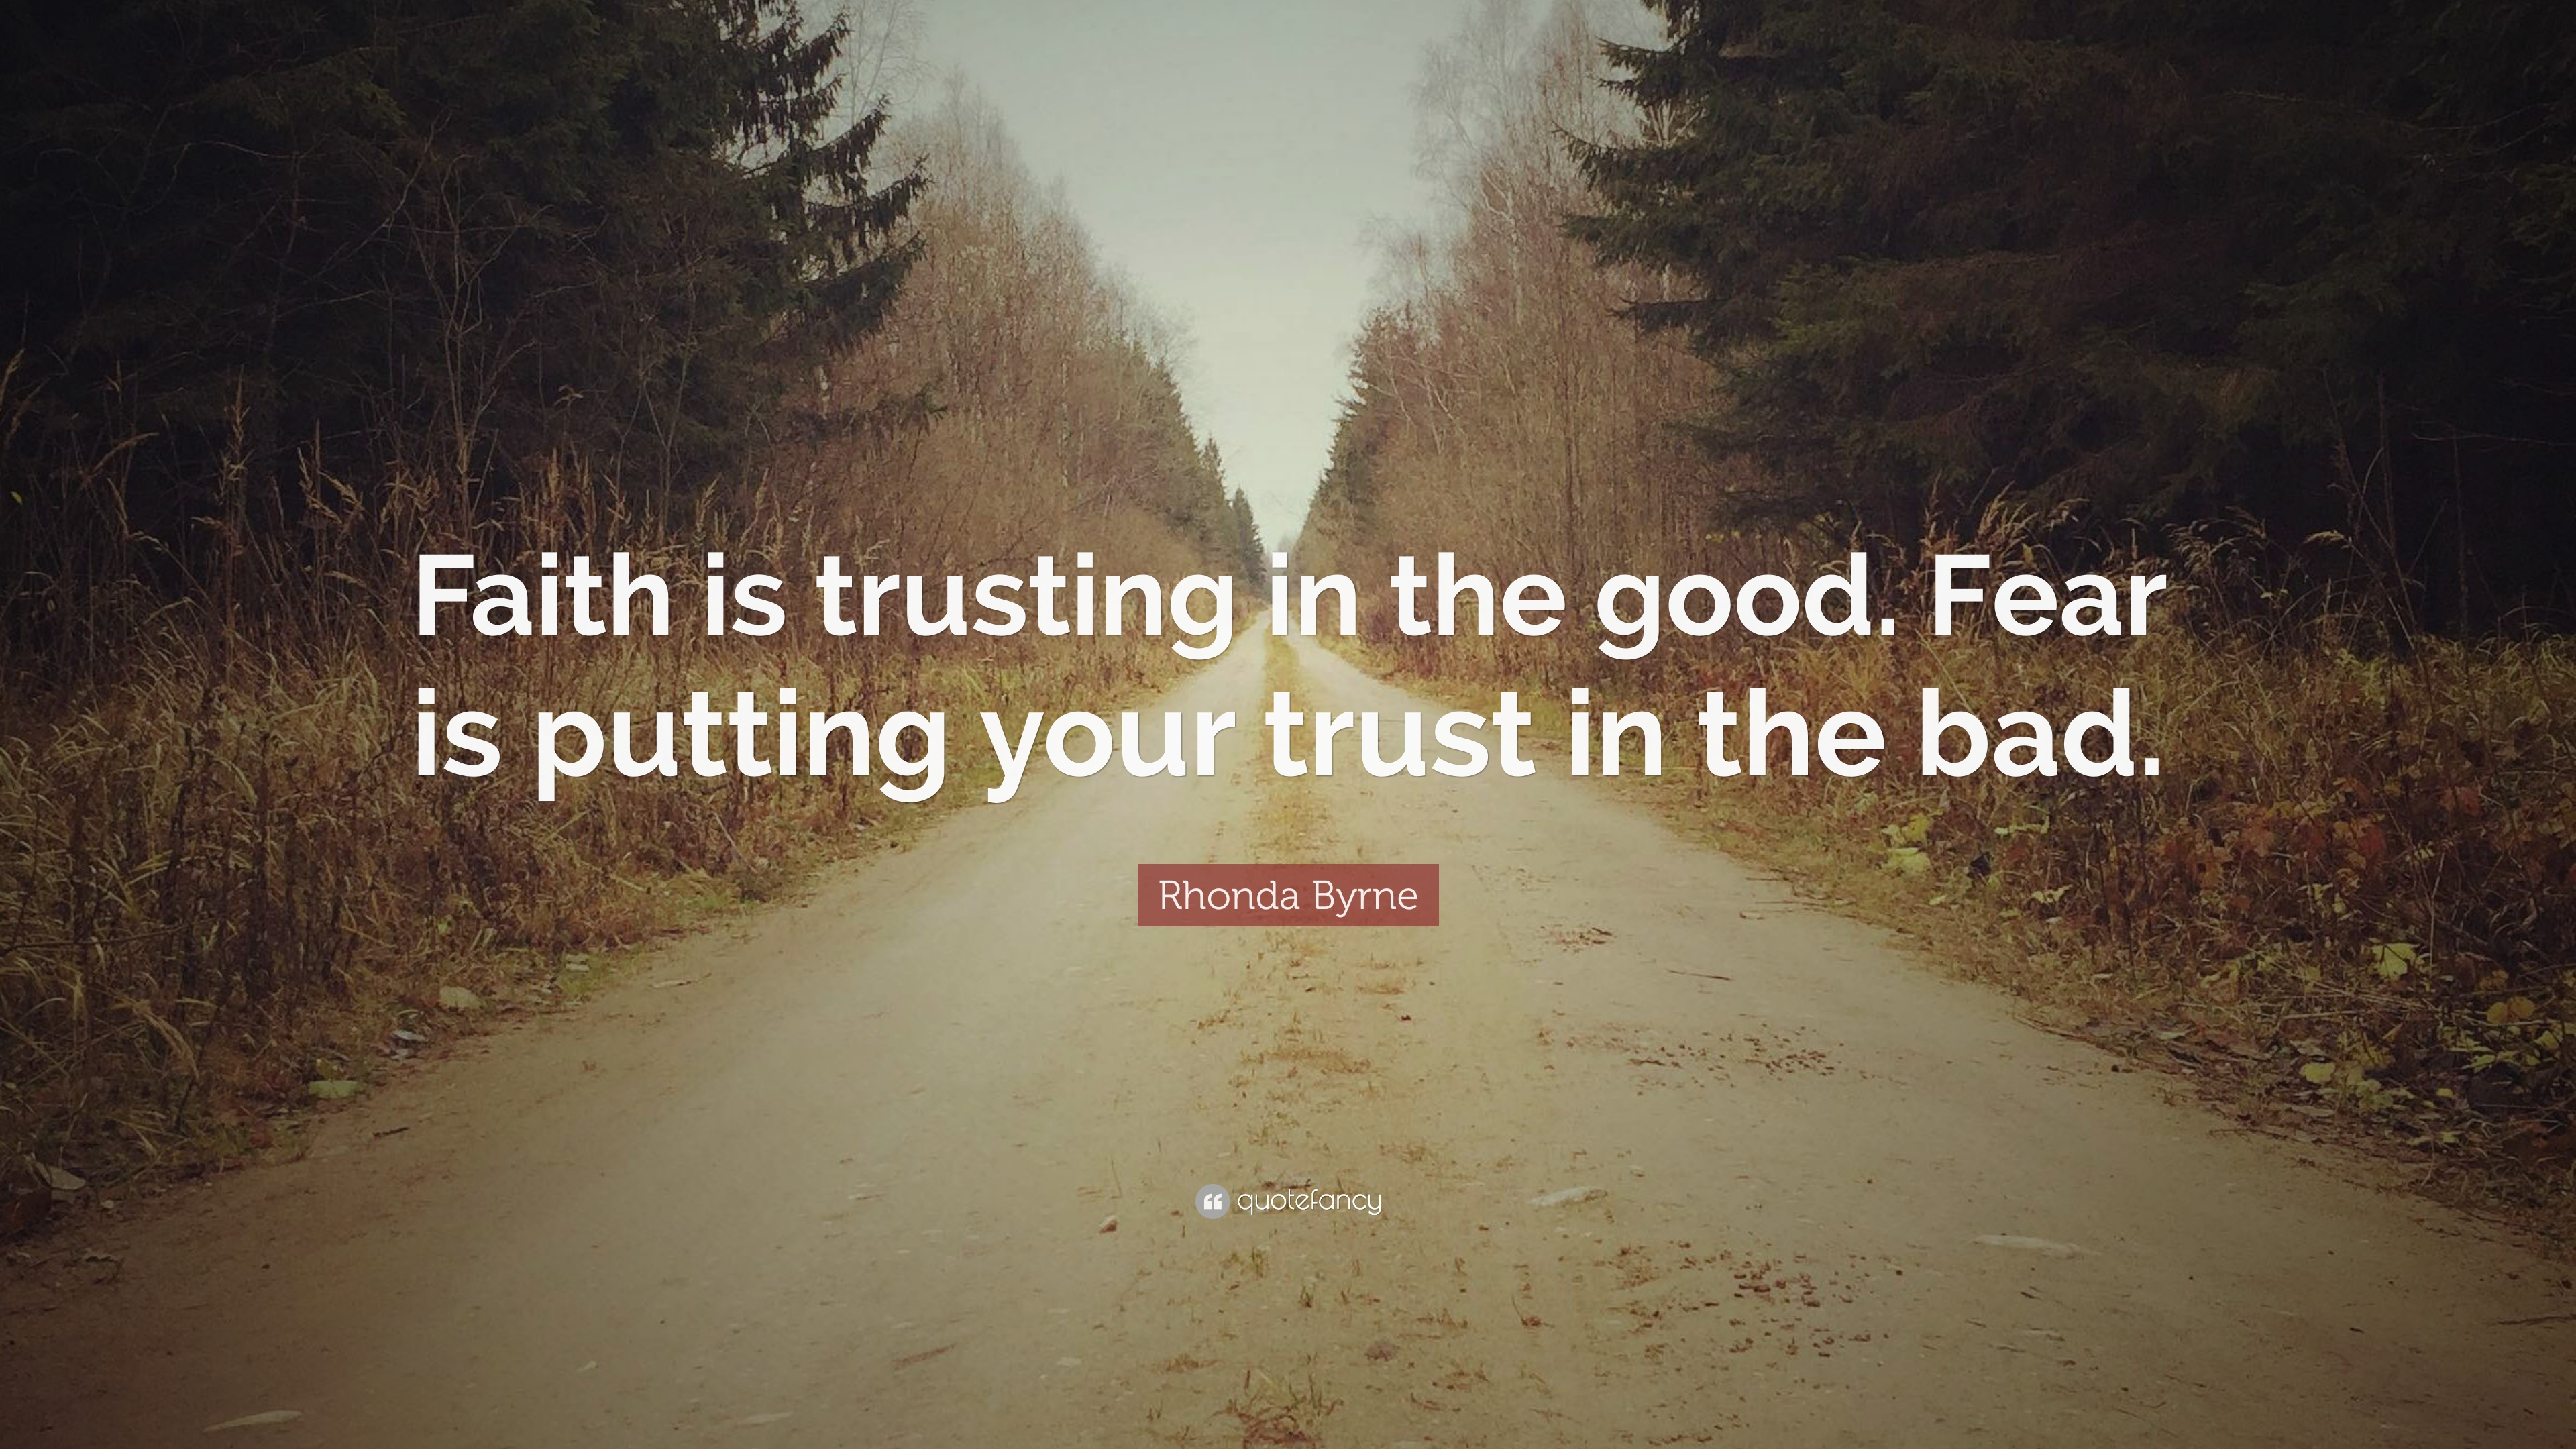 Rhonda Byrne Quote Faith Is Trusting In The Good Fear Is Putting